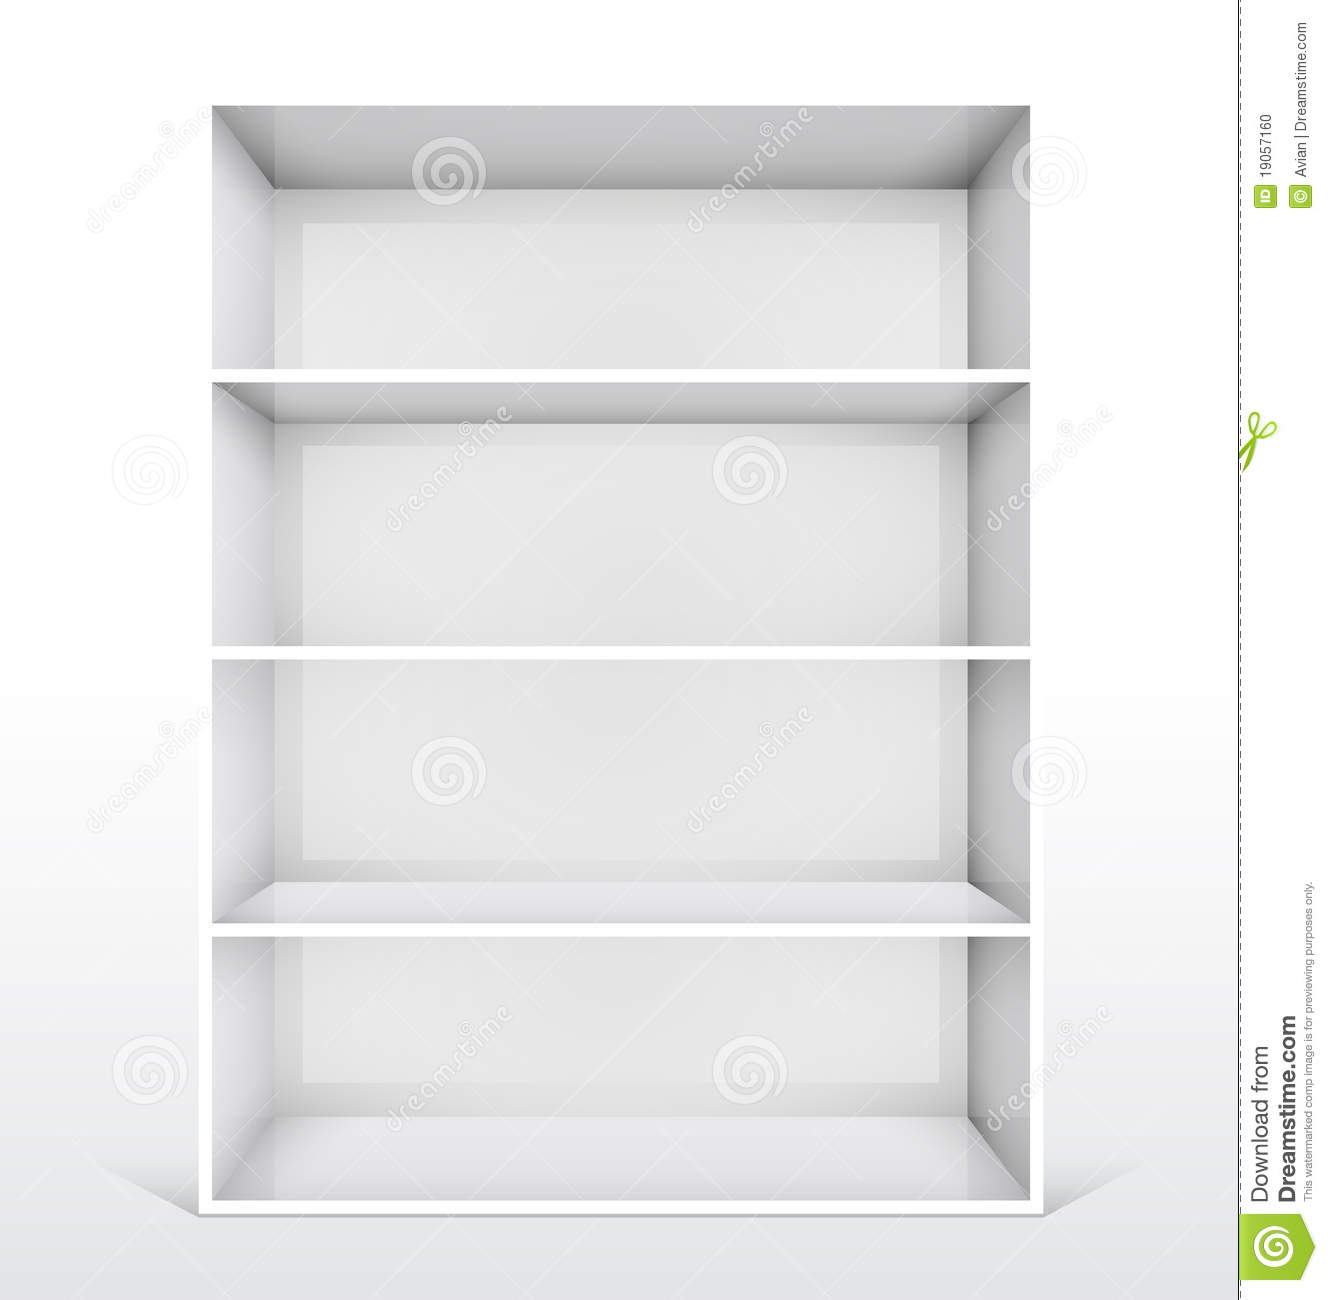 d isolated empty white bookshelf stock photo  image  - bookshelf empty illustration isolated white